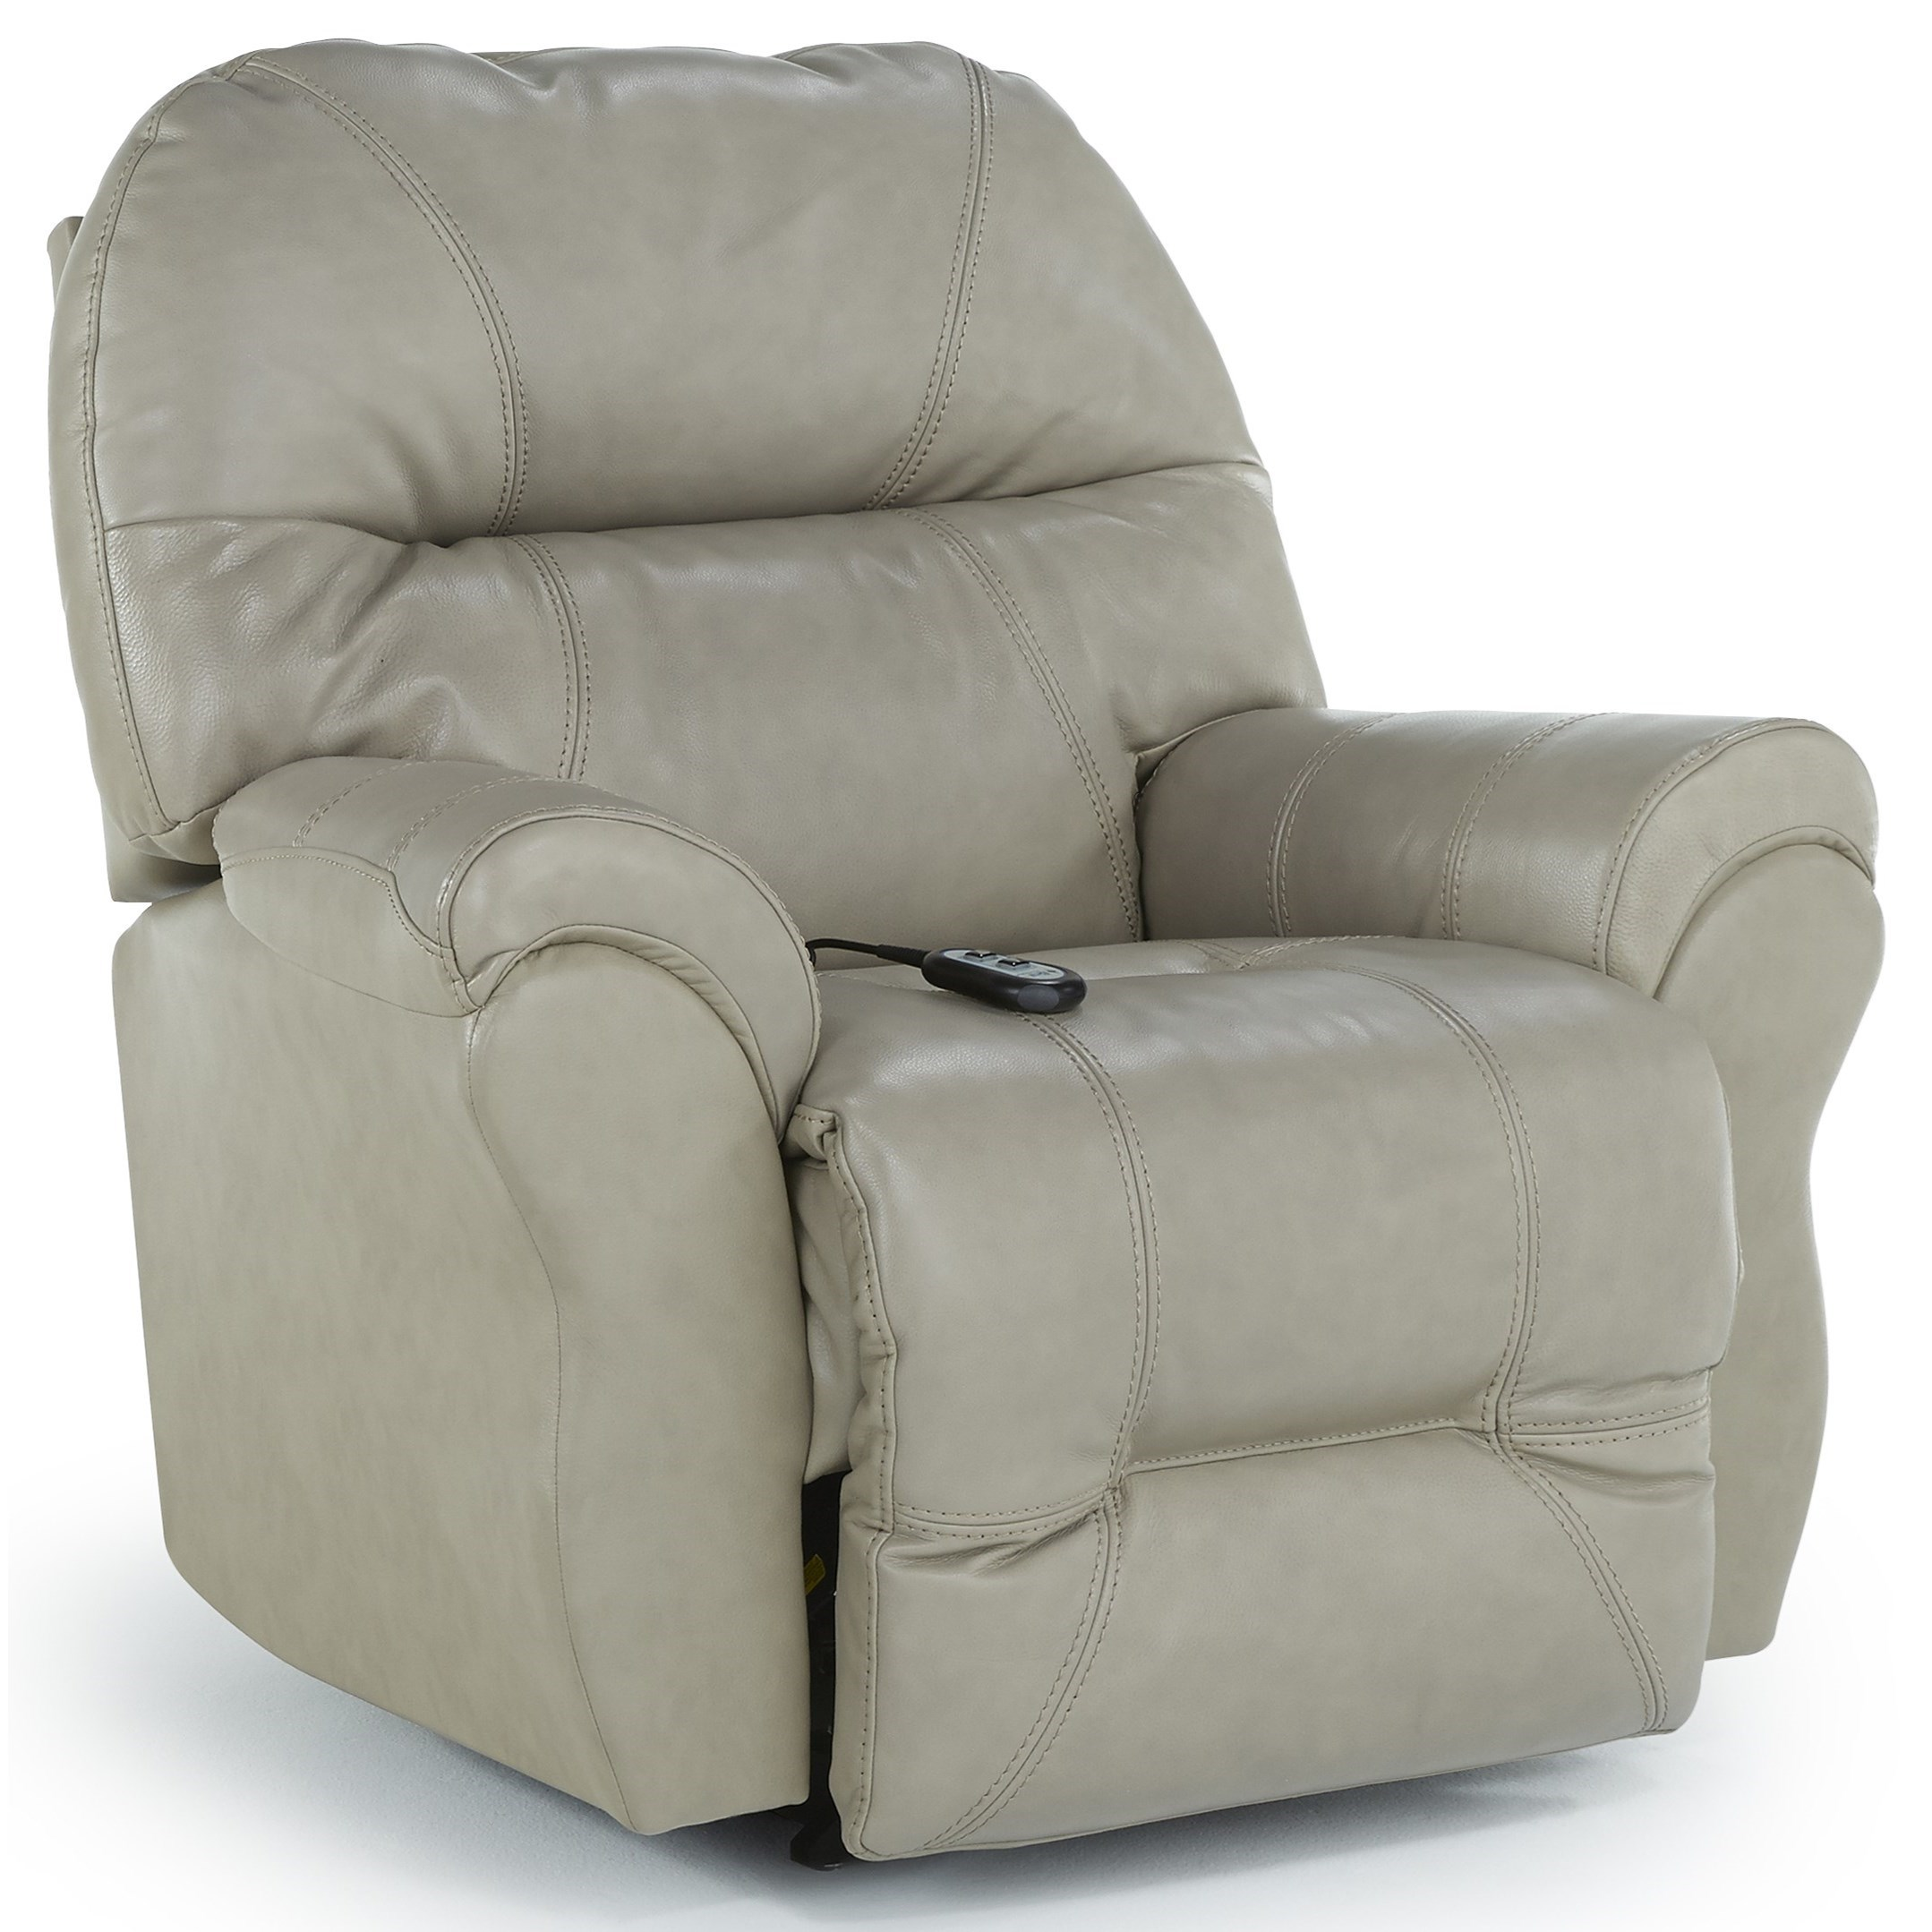 Medium Recliners Bodie Power Swivel Glider Recliner by Best Home Furnishings at Baer's Furniture